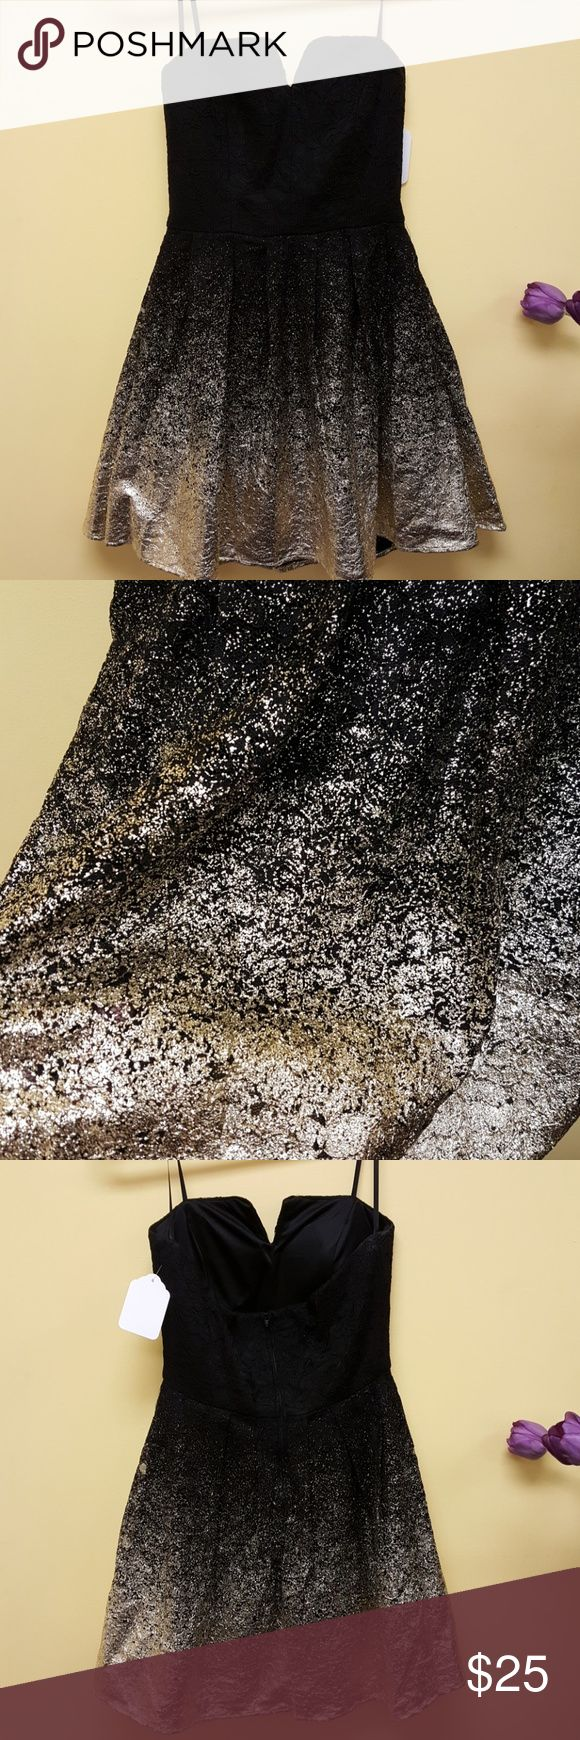 B smart strapless black ombre to gold foil dress NWT stunning size 9 dress. The gold is soft and so vibrant, pics do. Ot do this dress justice! B. Smart Dresses Strapless